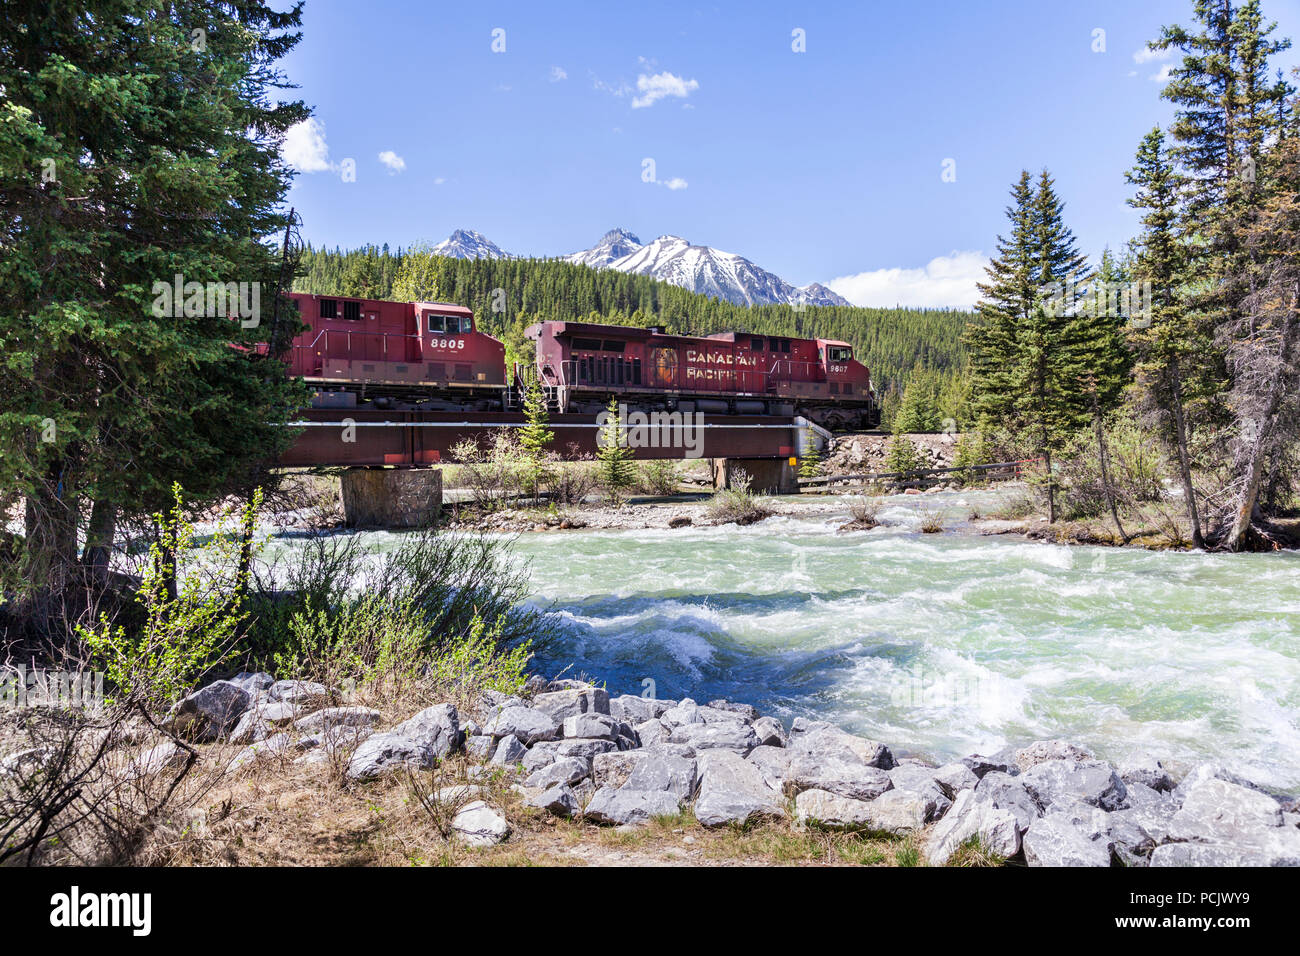 A freight train on the Canadian Pacific Railway crossing the Bow River in the Rocky Mountains at the town of Lake Louise, Alberta, Canada Stock Photo